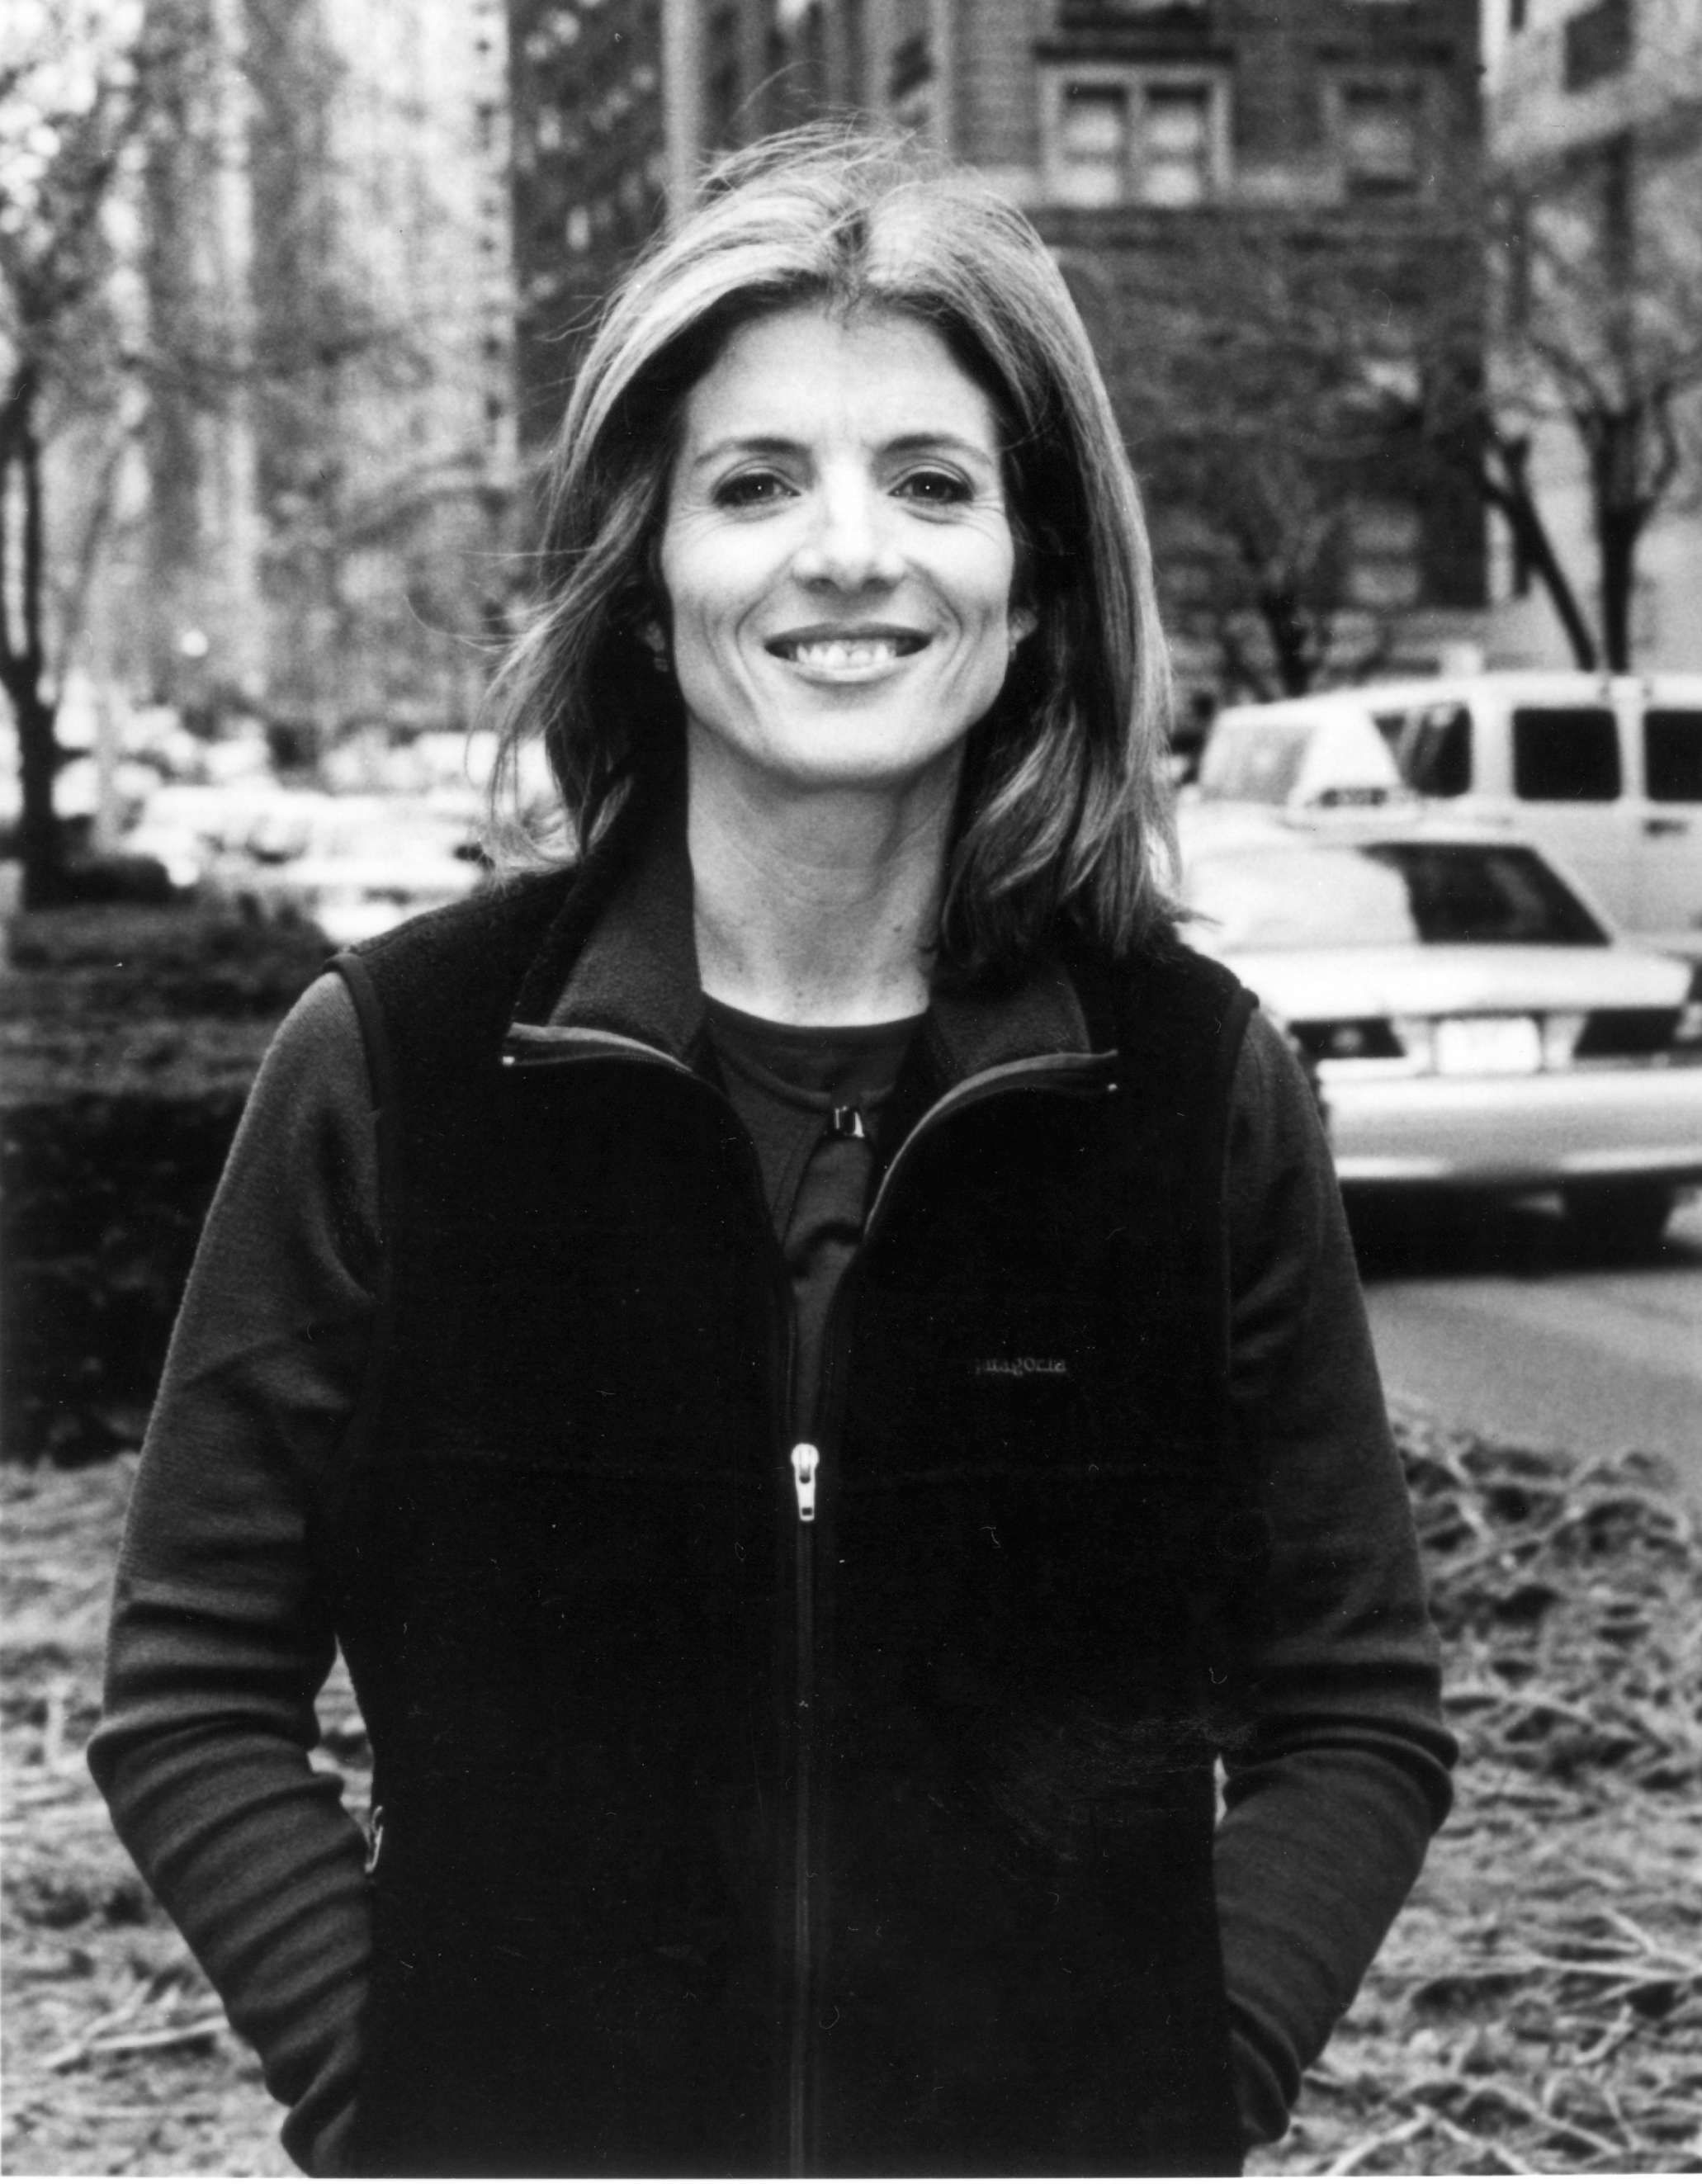 Caroline kennedy schlossberg my hero right now because shes lost caroline kennedy schlossberg my hero right now because shes lost her whole immediate family too altavistaventures Images